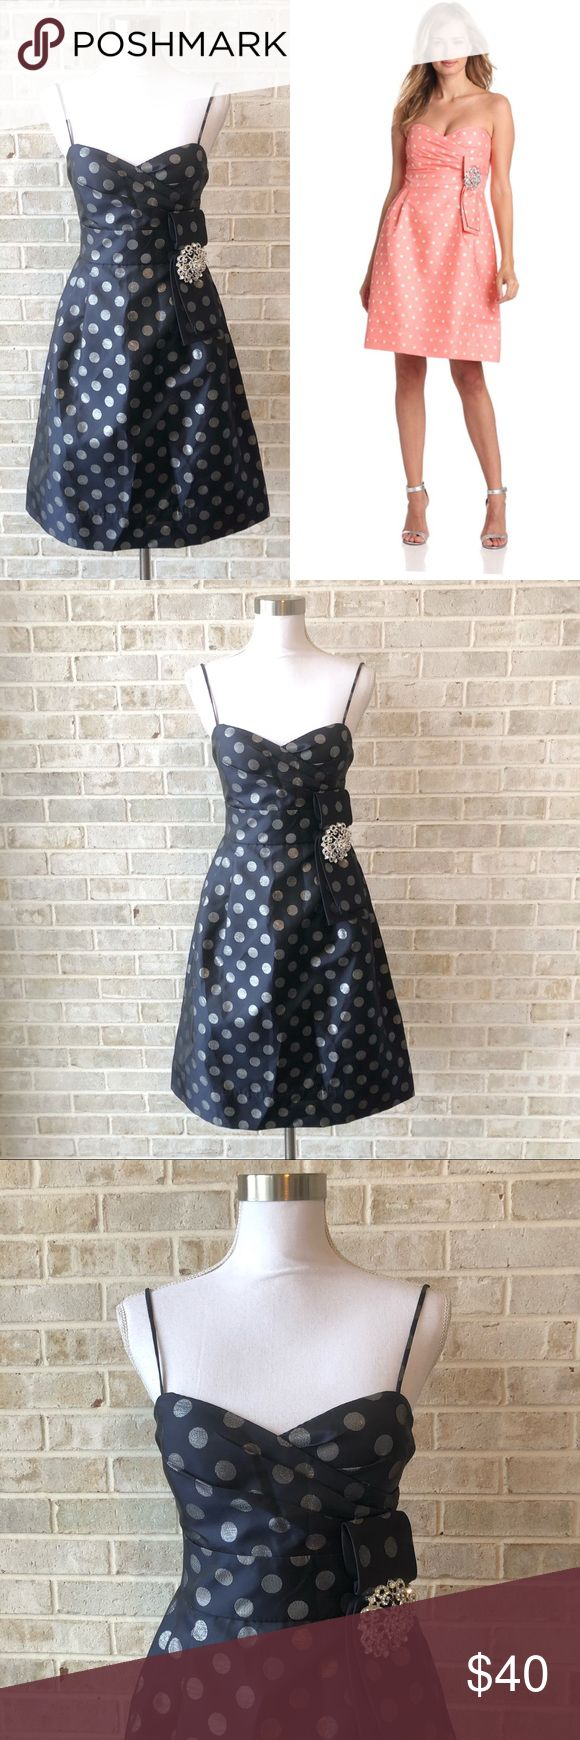 Eliza J Dot Dress Rhinestones Cocktail Blue Nwt • Brand: Eliza J • Size:2 • Material: See picture of tag in photos • new  • Length 40 Bust 16.5 Waist 13.5 • Other info: lined dress with dots. Cute rhinestone attachment. Navy color is available, peach shown to show fit •Inventory id:2431 Eliza J Dresses